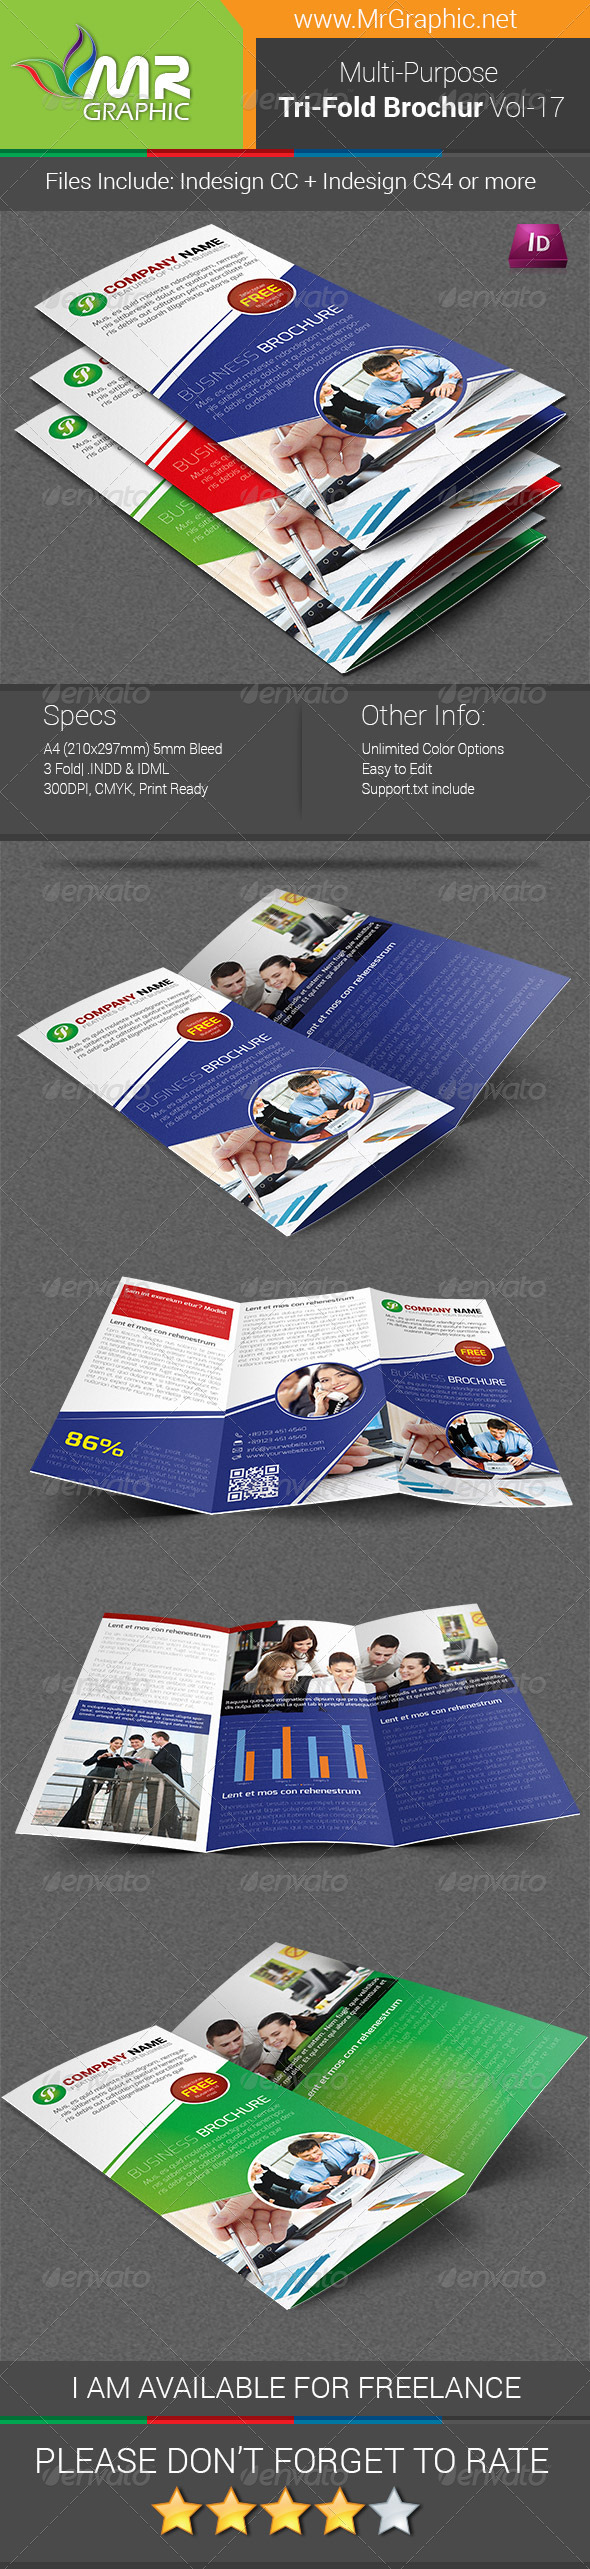 Multipurpose Business Tri-Fold Brochure Vol-17 - Corporate Brochures